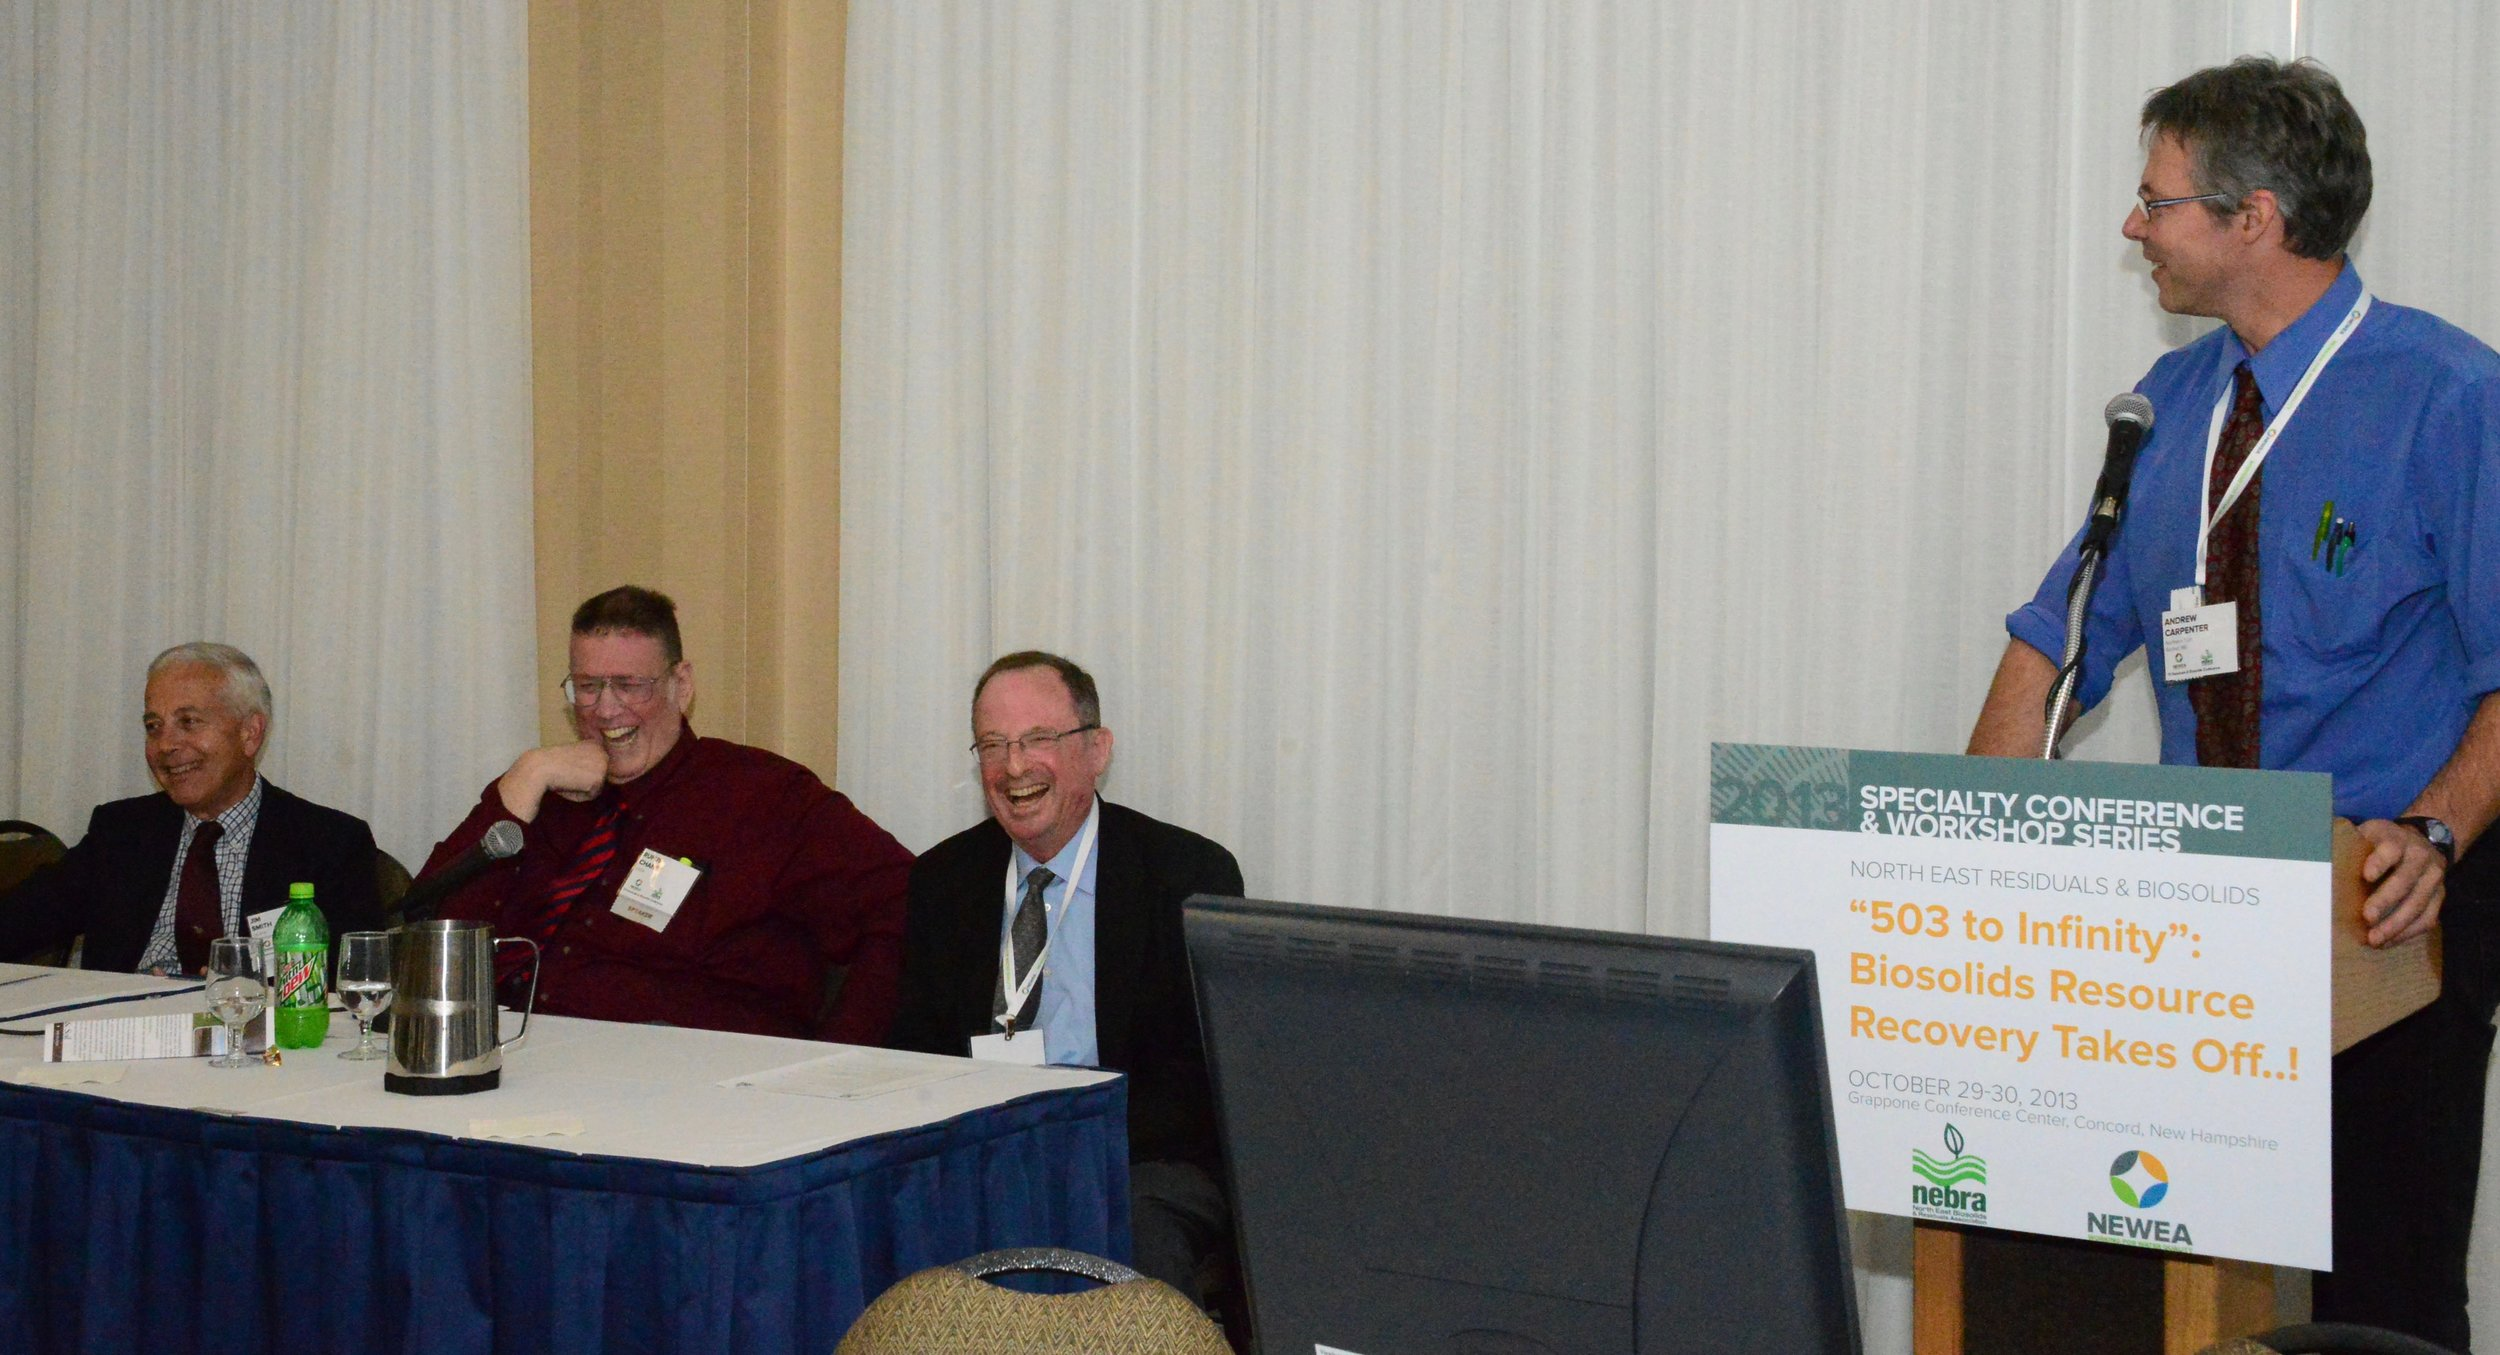 Jim Smith (left), Rufus Chaney, and Alan Rubin (center) are celebrated at the 2013 Northeast Conference, introduced by Andrew Carpenter (right).